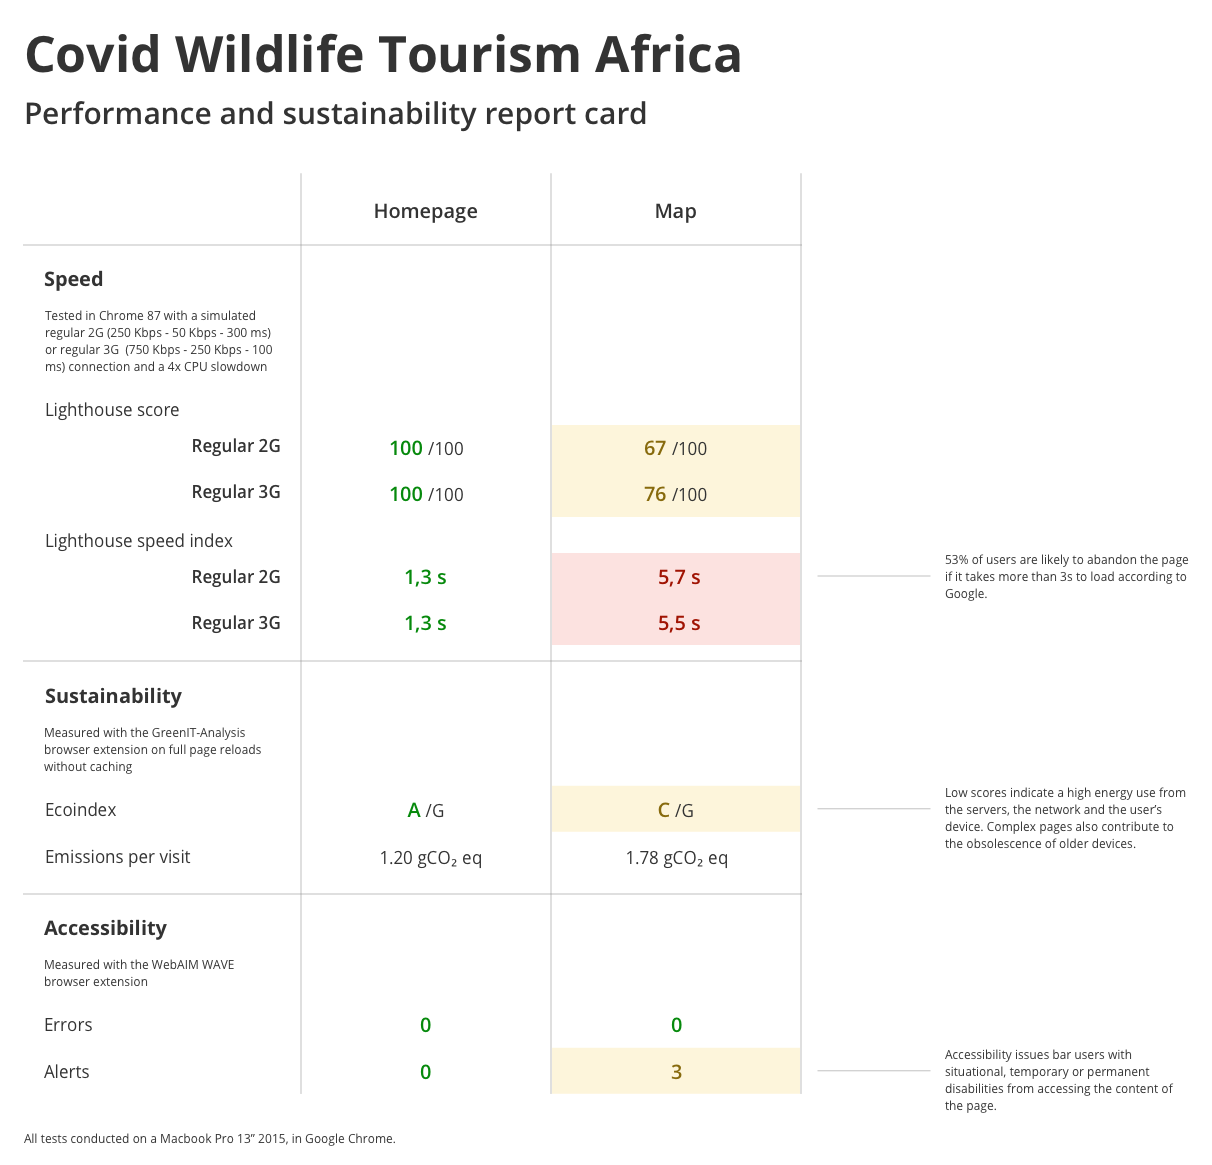 Covid Wildlife Tourism Africa's performance and sustainability report card. The homepage scores 100/100 in Lighthouse, loads in 1.3s on regular 2G and 3G, has an Ecoindex of A/G, emits approximately 1.20 gCO₂ eq per visit and has 0 accessibility errors. The Map scores 67 for regular 2G and 76/100 for regular 3G in Lighthouse, loads in about 5.5s on both 2G and 3G, has an Ecoindex rank of C/G, emits about 1.78 gCO₂ eq per visit and has 3 accessibility alerts.